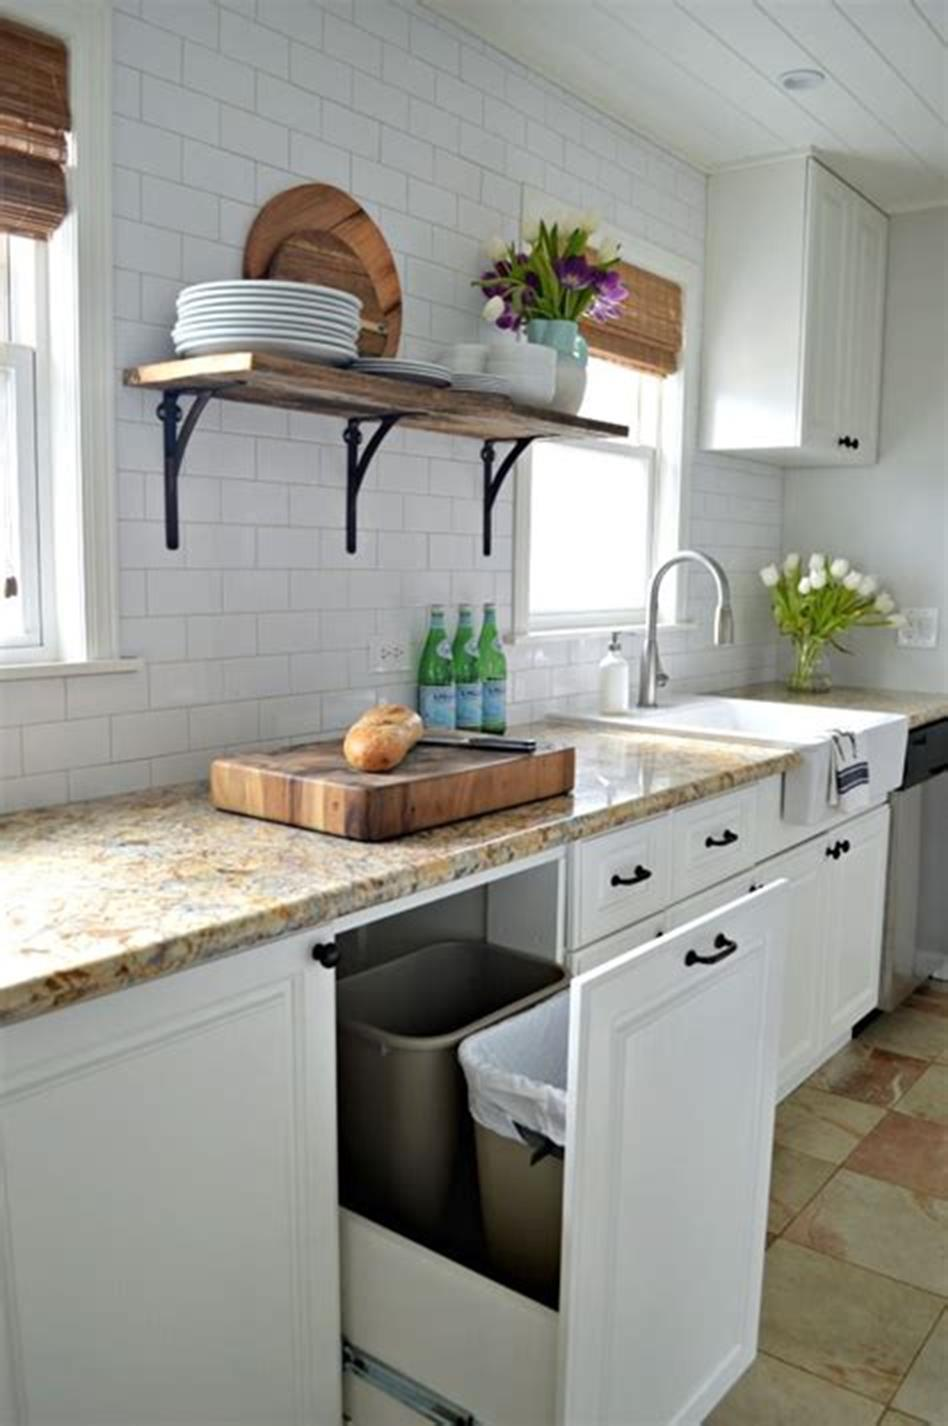 43 Amazing Kitchen Remodeling Ideas for Small Kitchens 2019 26